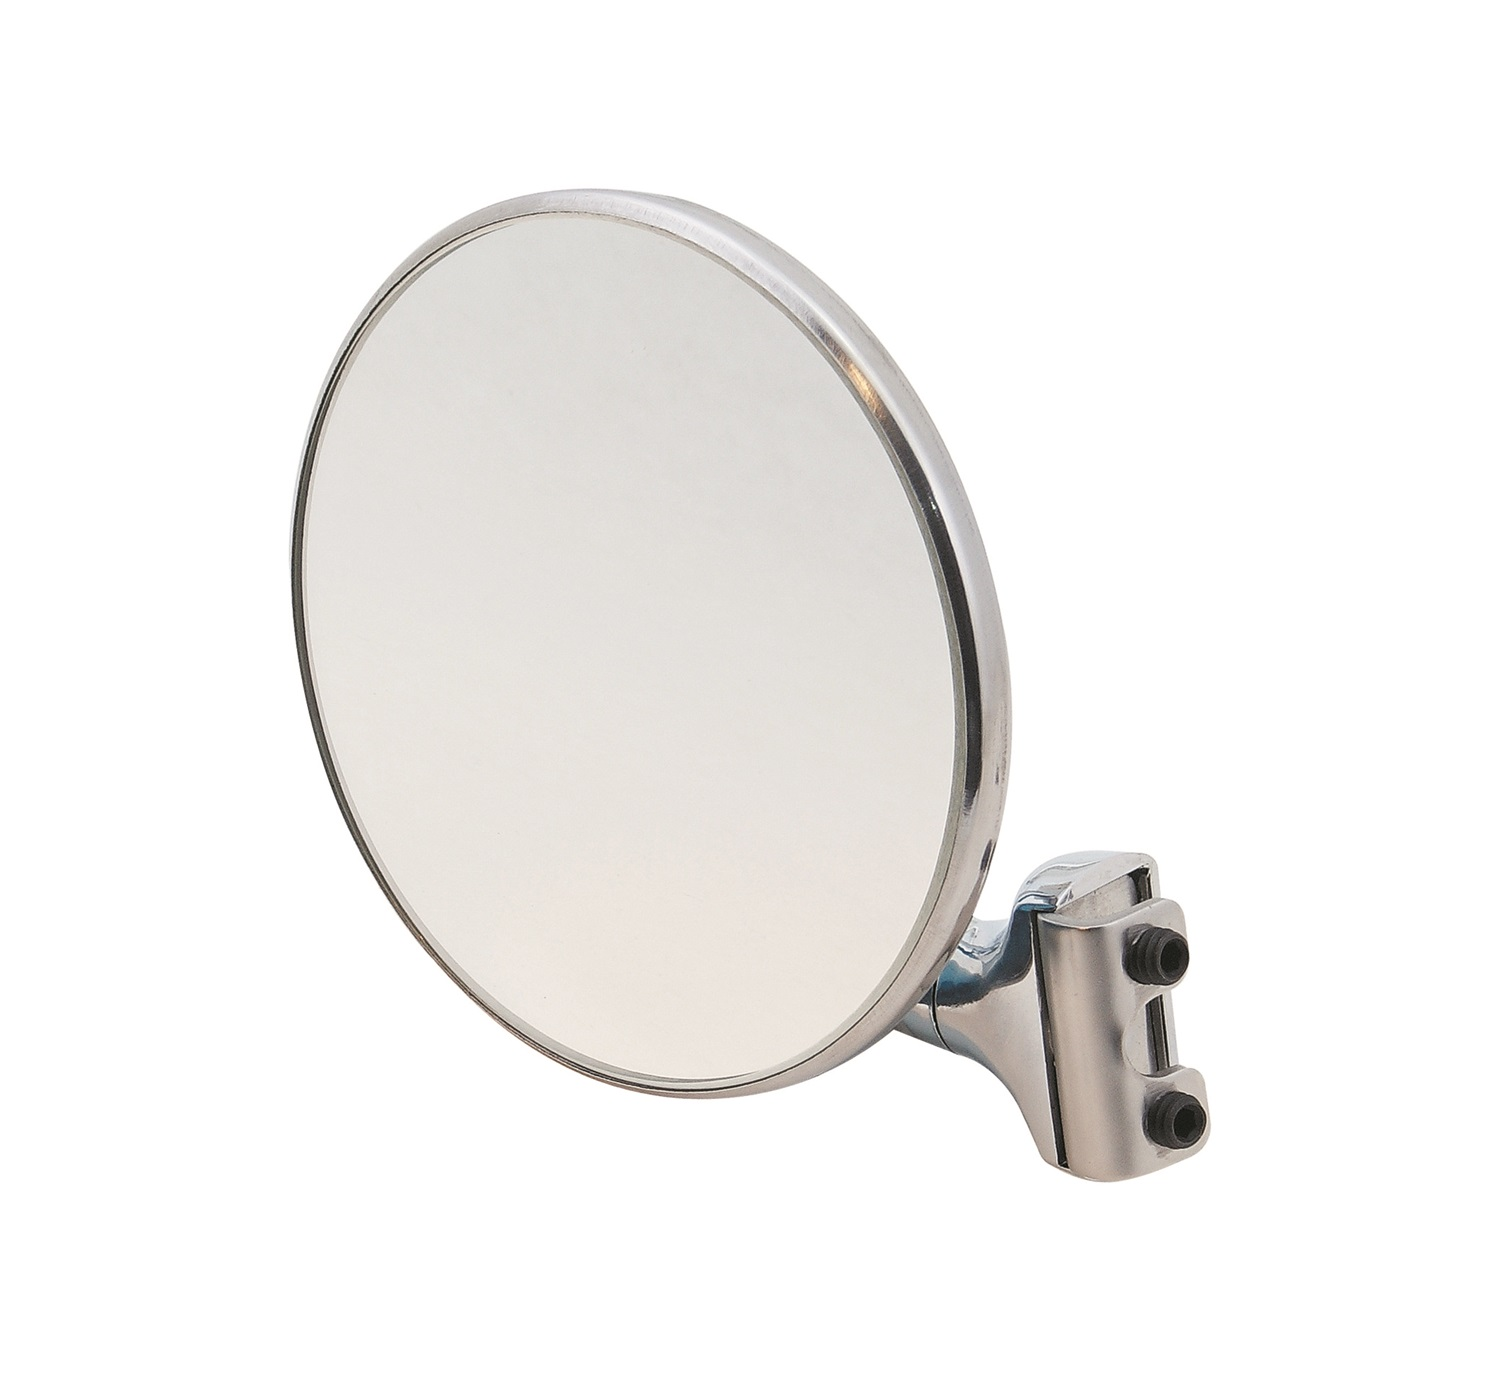 Mr. Gasket Door Mirror (8217G)